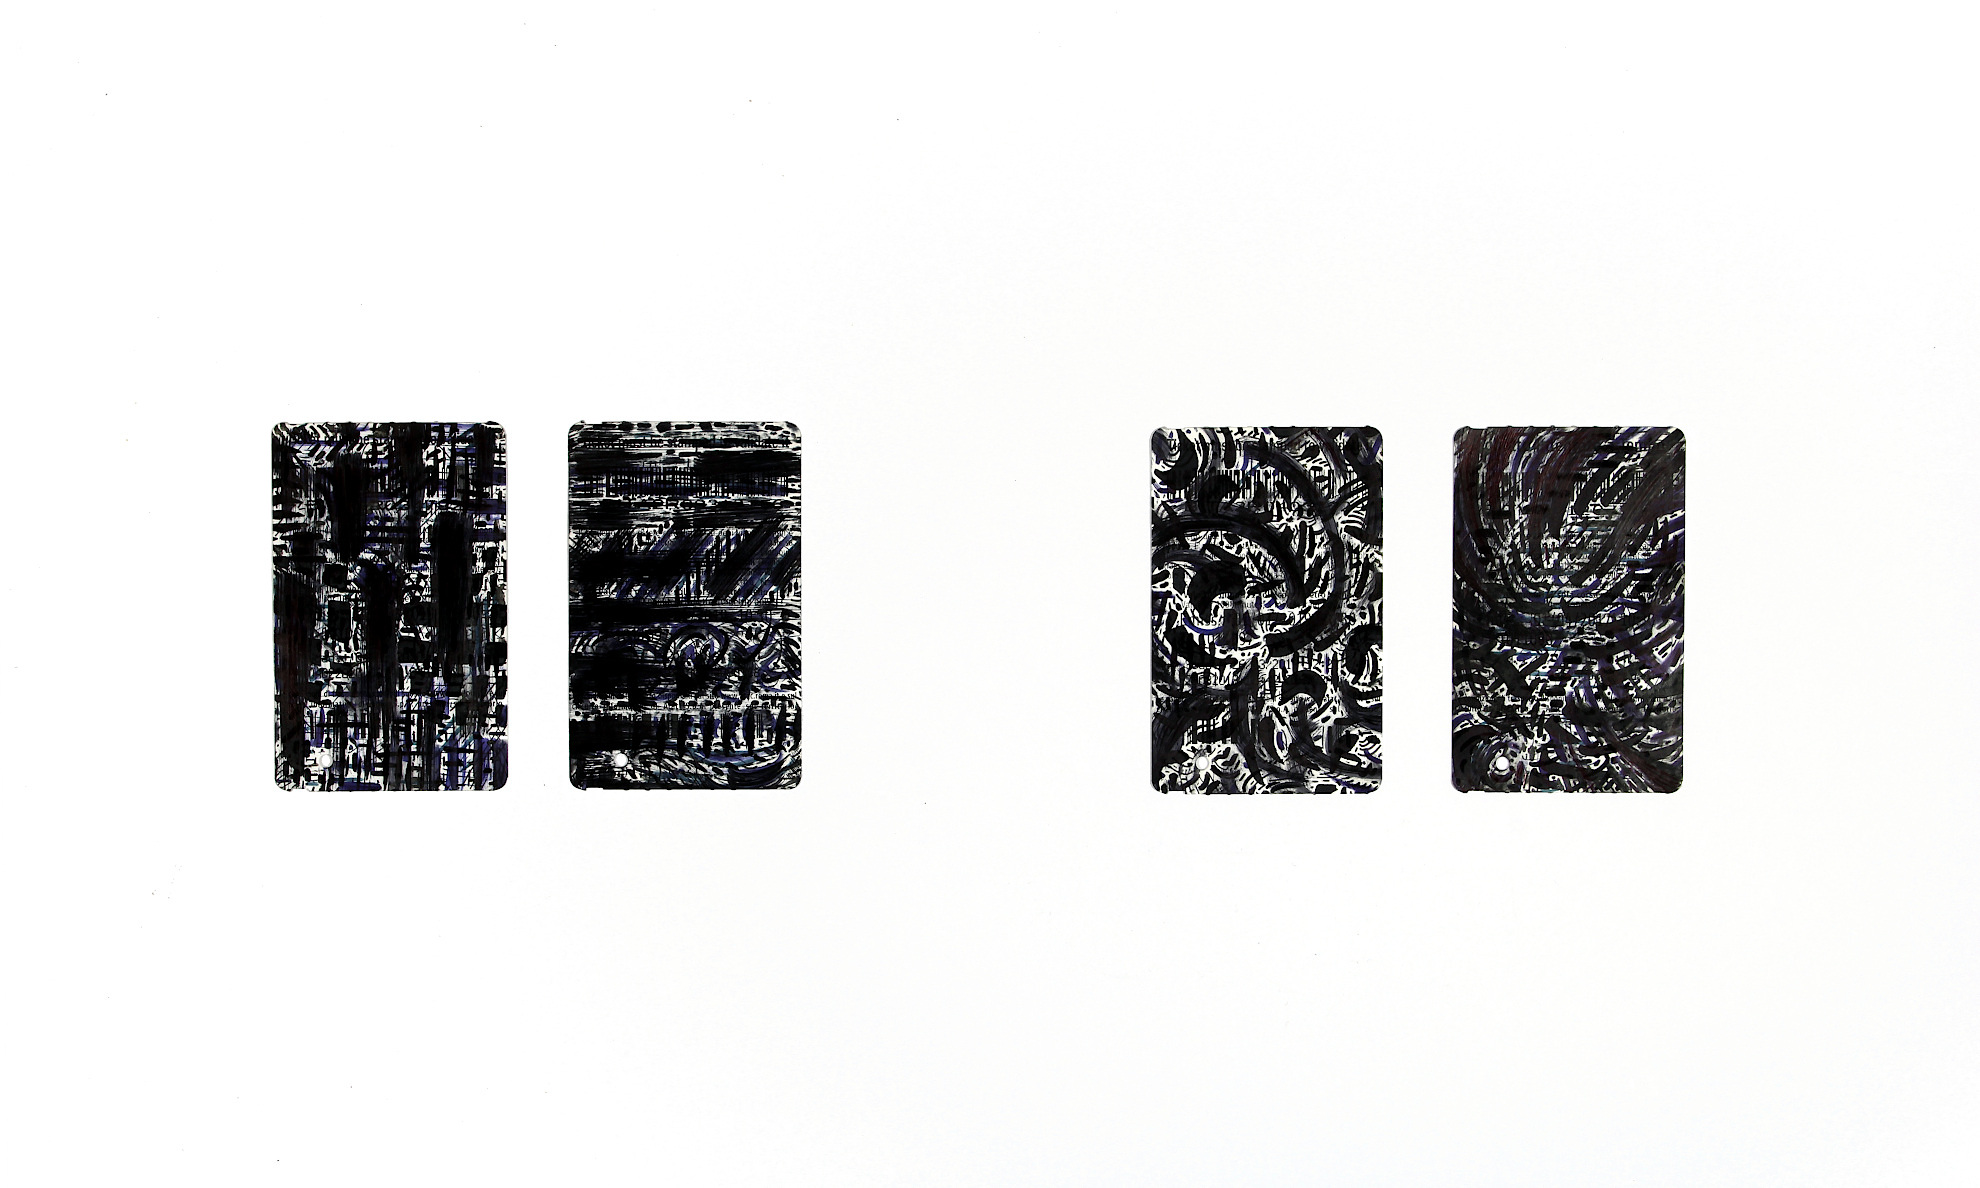 Monosema - 2017/20 - inks on printed and shaped paper, each one 8,5 x 5,5 cm - 3,3 x 2,1 in